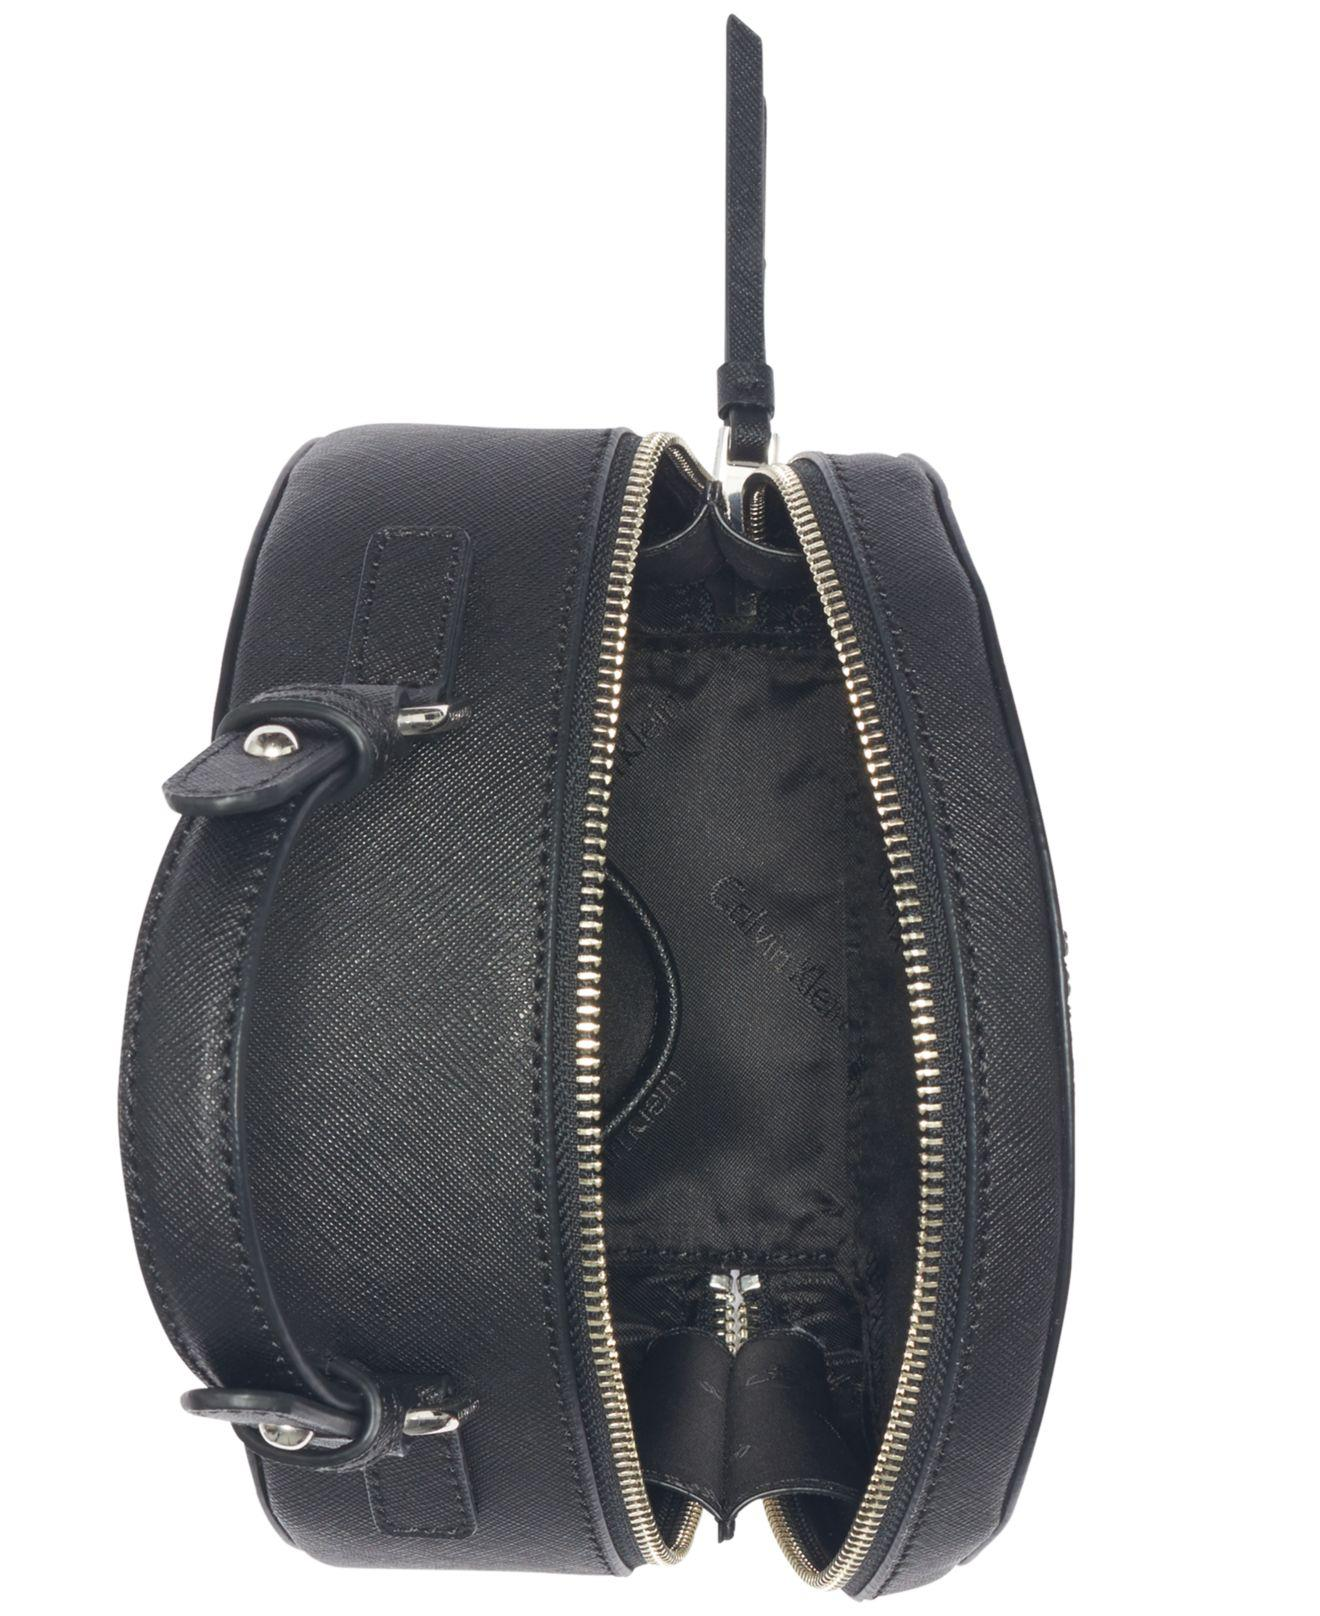 9277ce61cd42 Lyst - Calvin Klein Saffiano Leather Small Novelty Round Cantine Crossbody  in Black